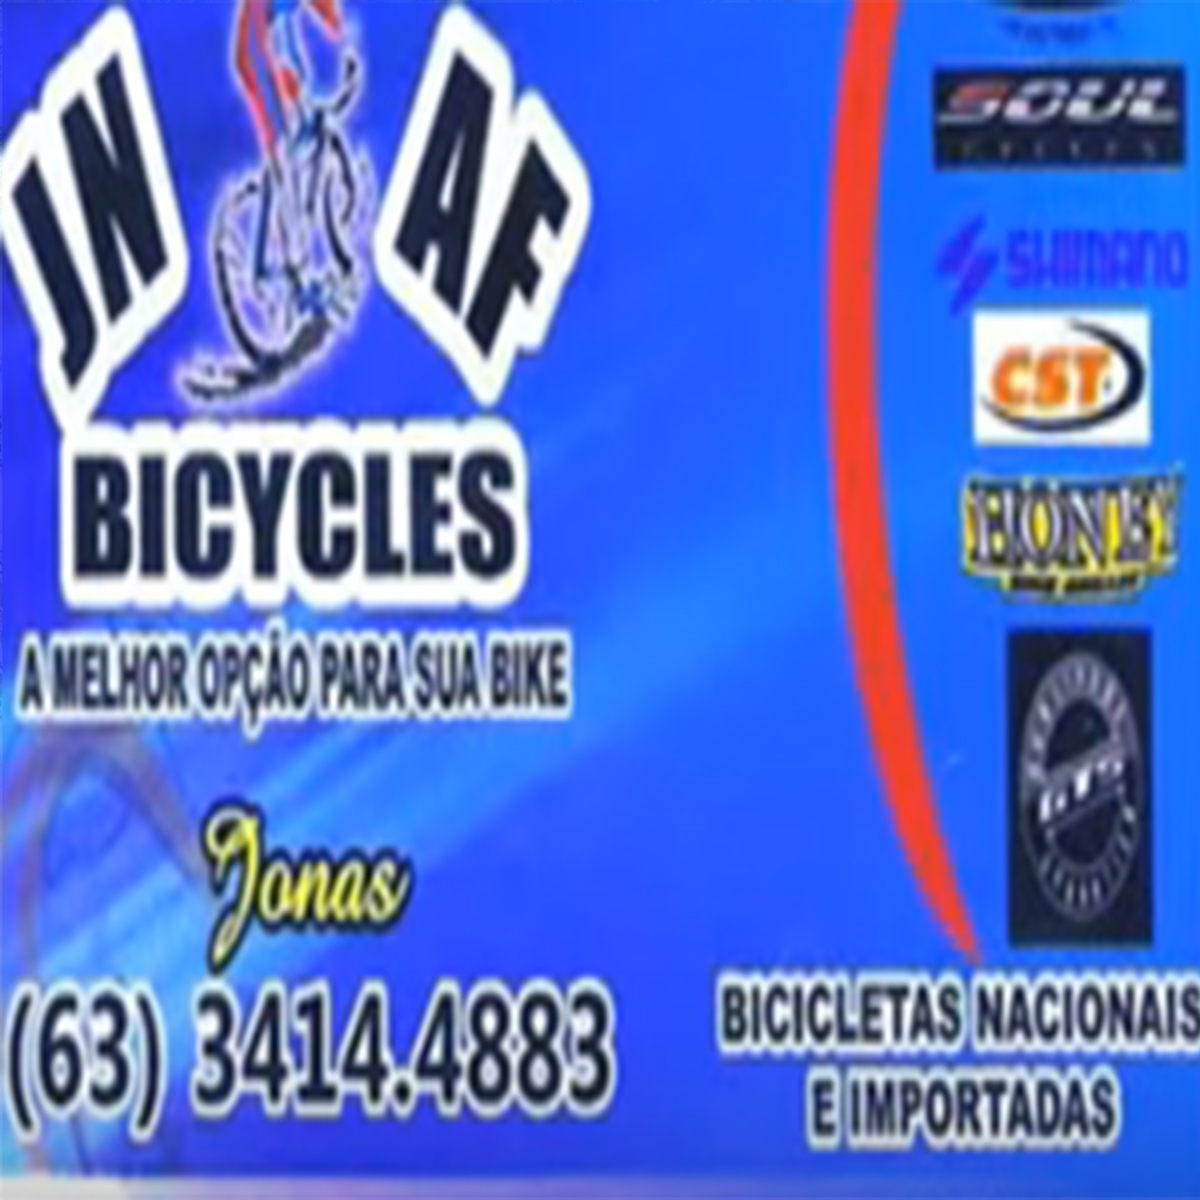 JNAF BICYCLES